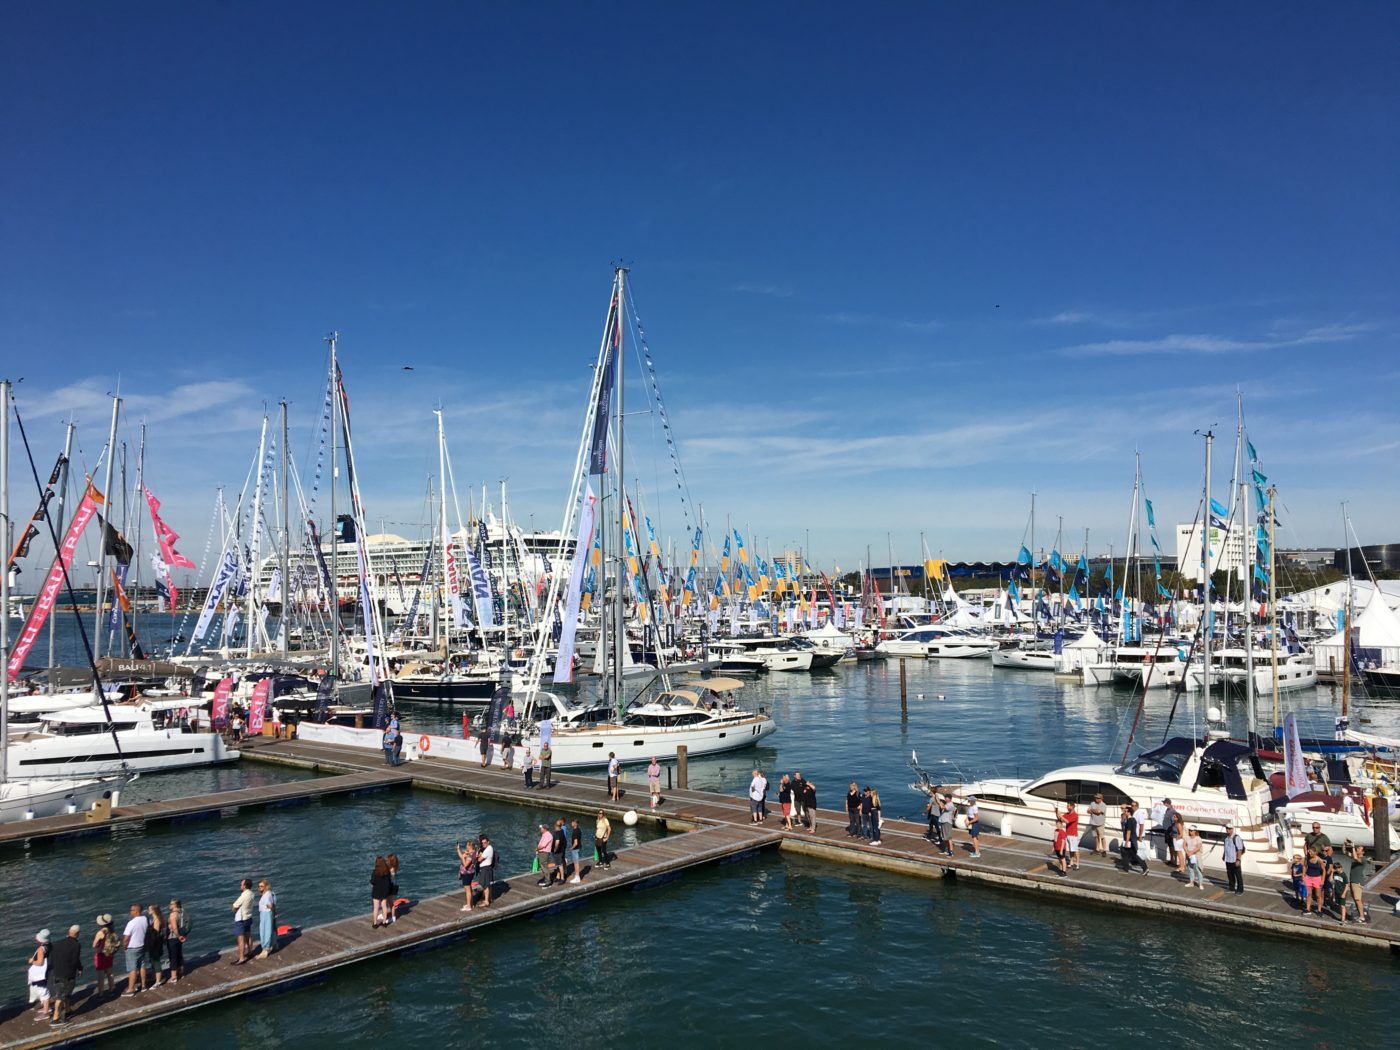 Southampton Boat Show ticket offer